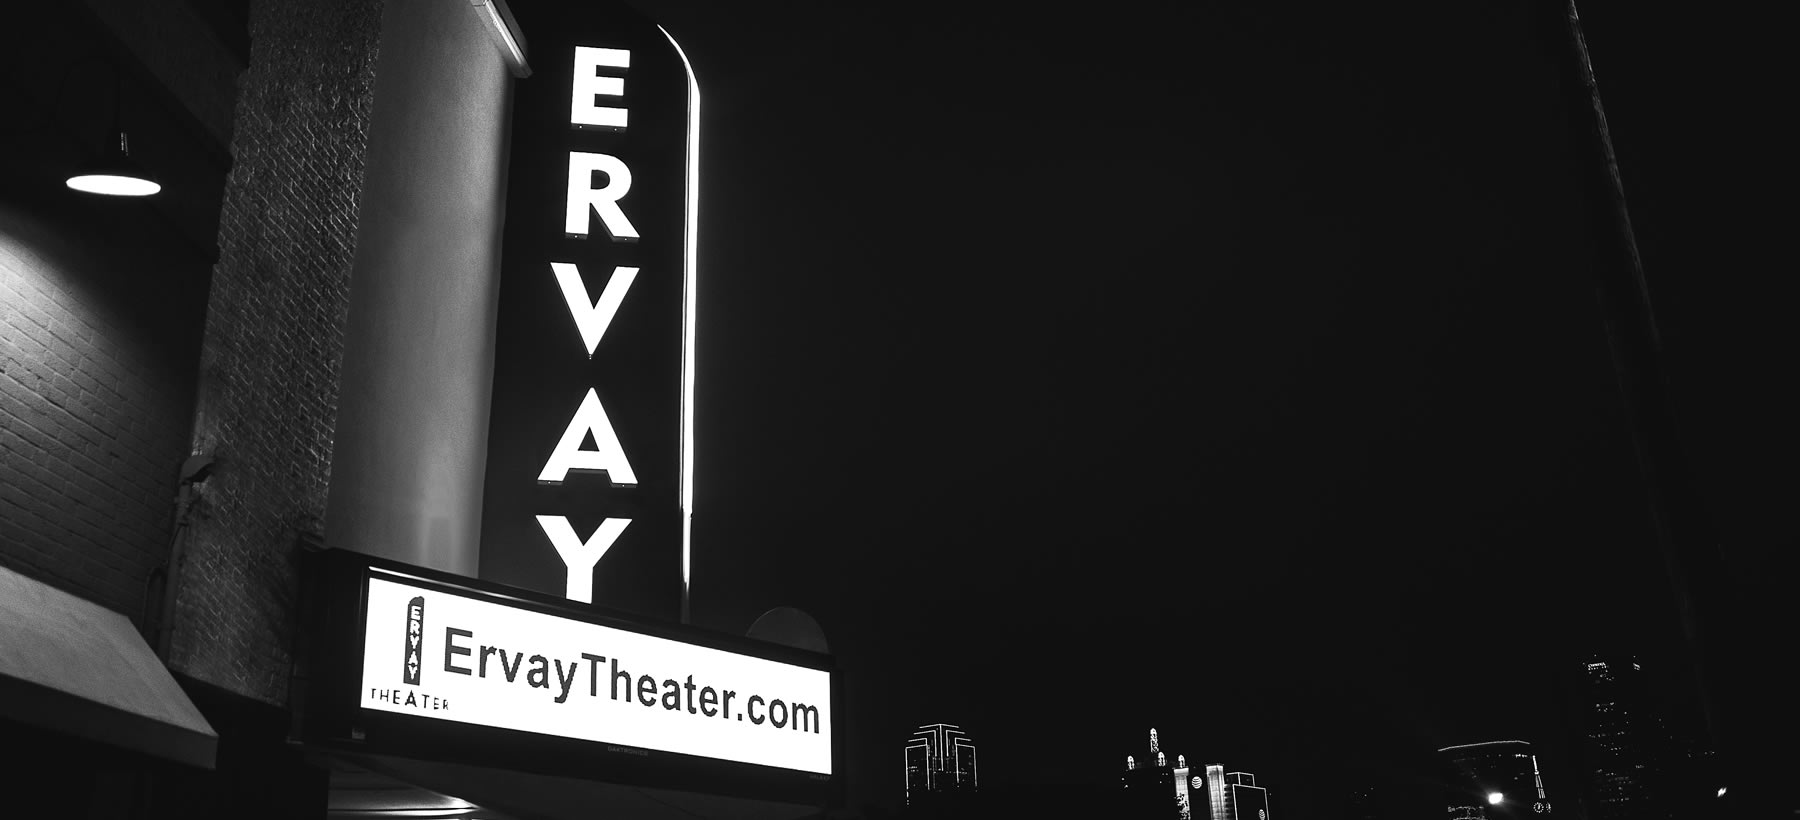 Ervay Theater Marquee